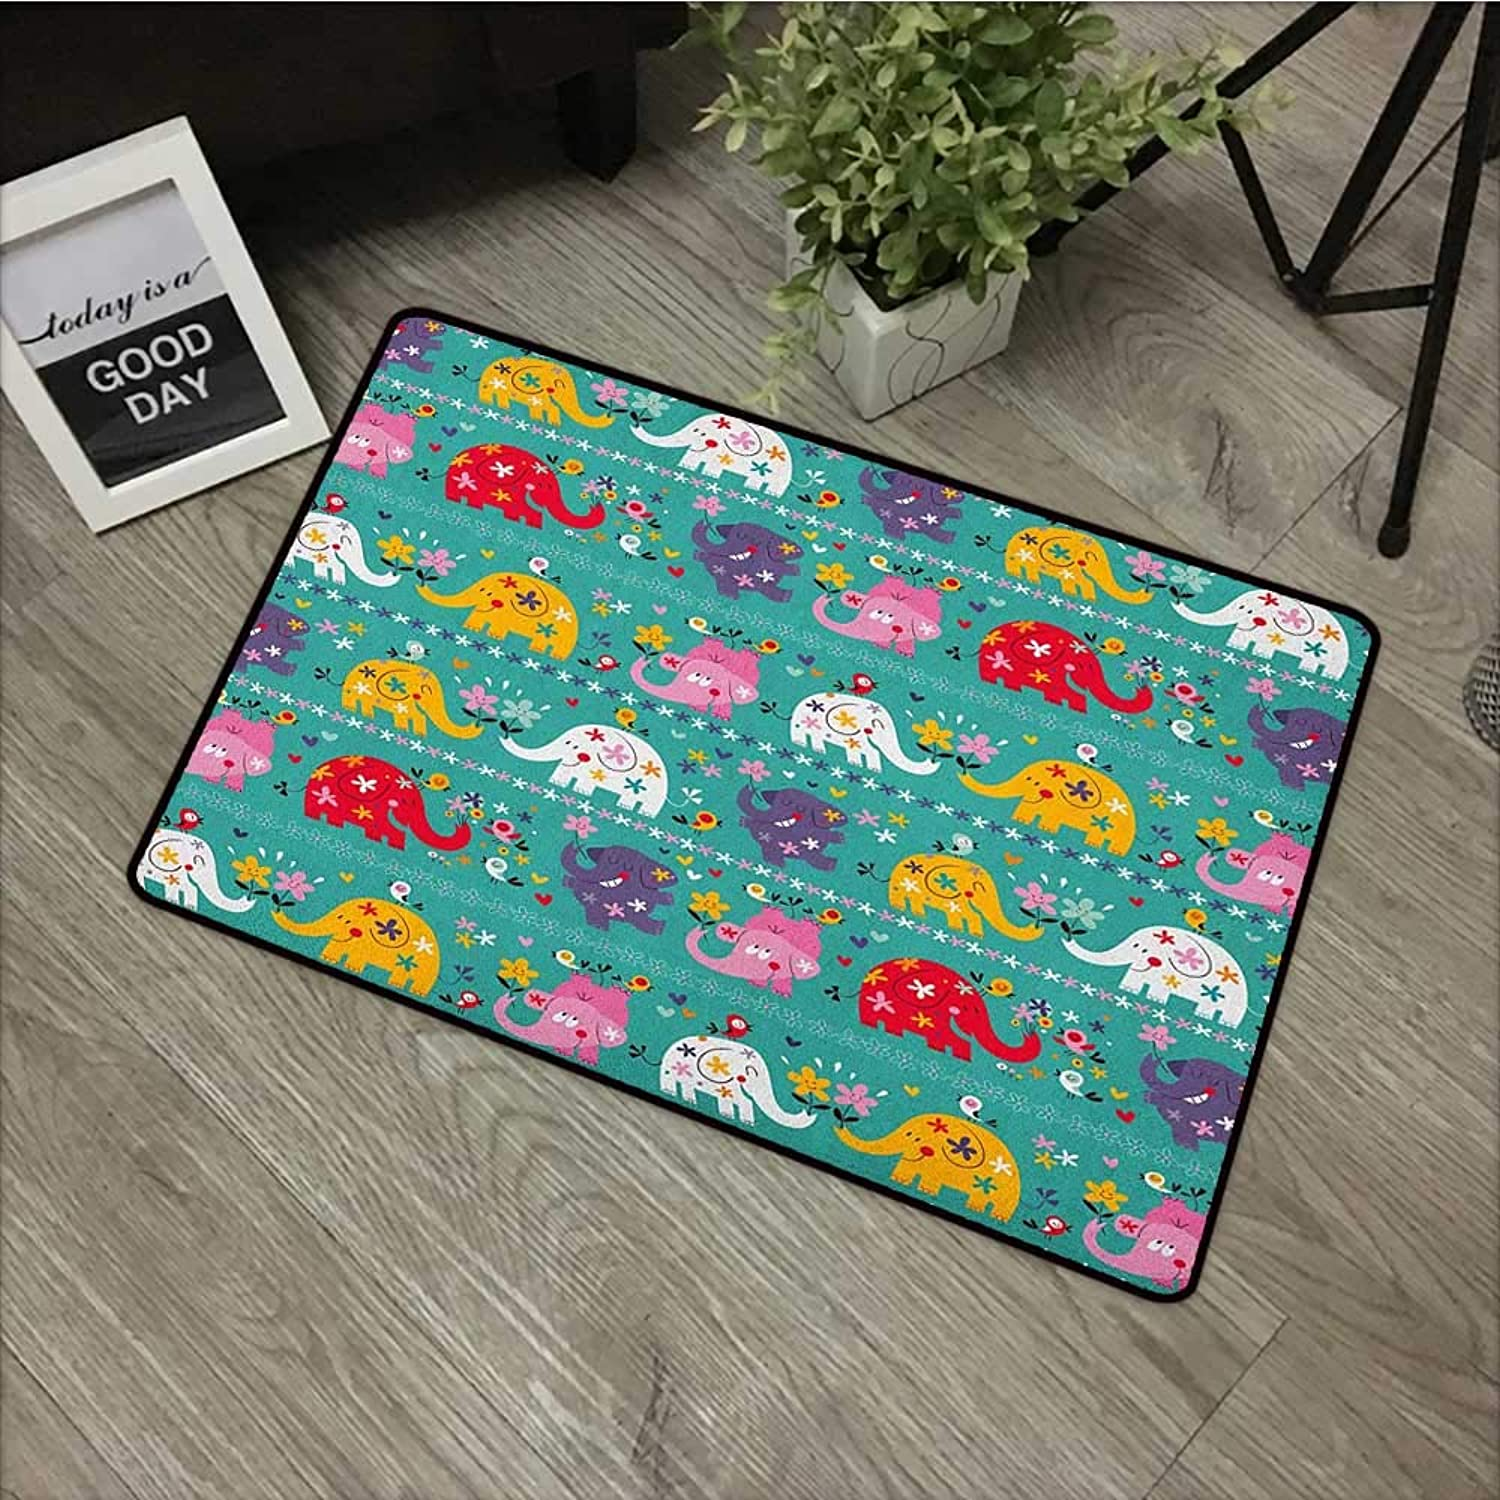 Hall mat W24 x L35 INCH Elephant Nursery,Joyful Kids Pattern Festive colorful Animals Happy Flowers Funny Nature, Multicolor with Non-Slip Backing Door Mat Carpet